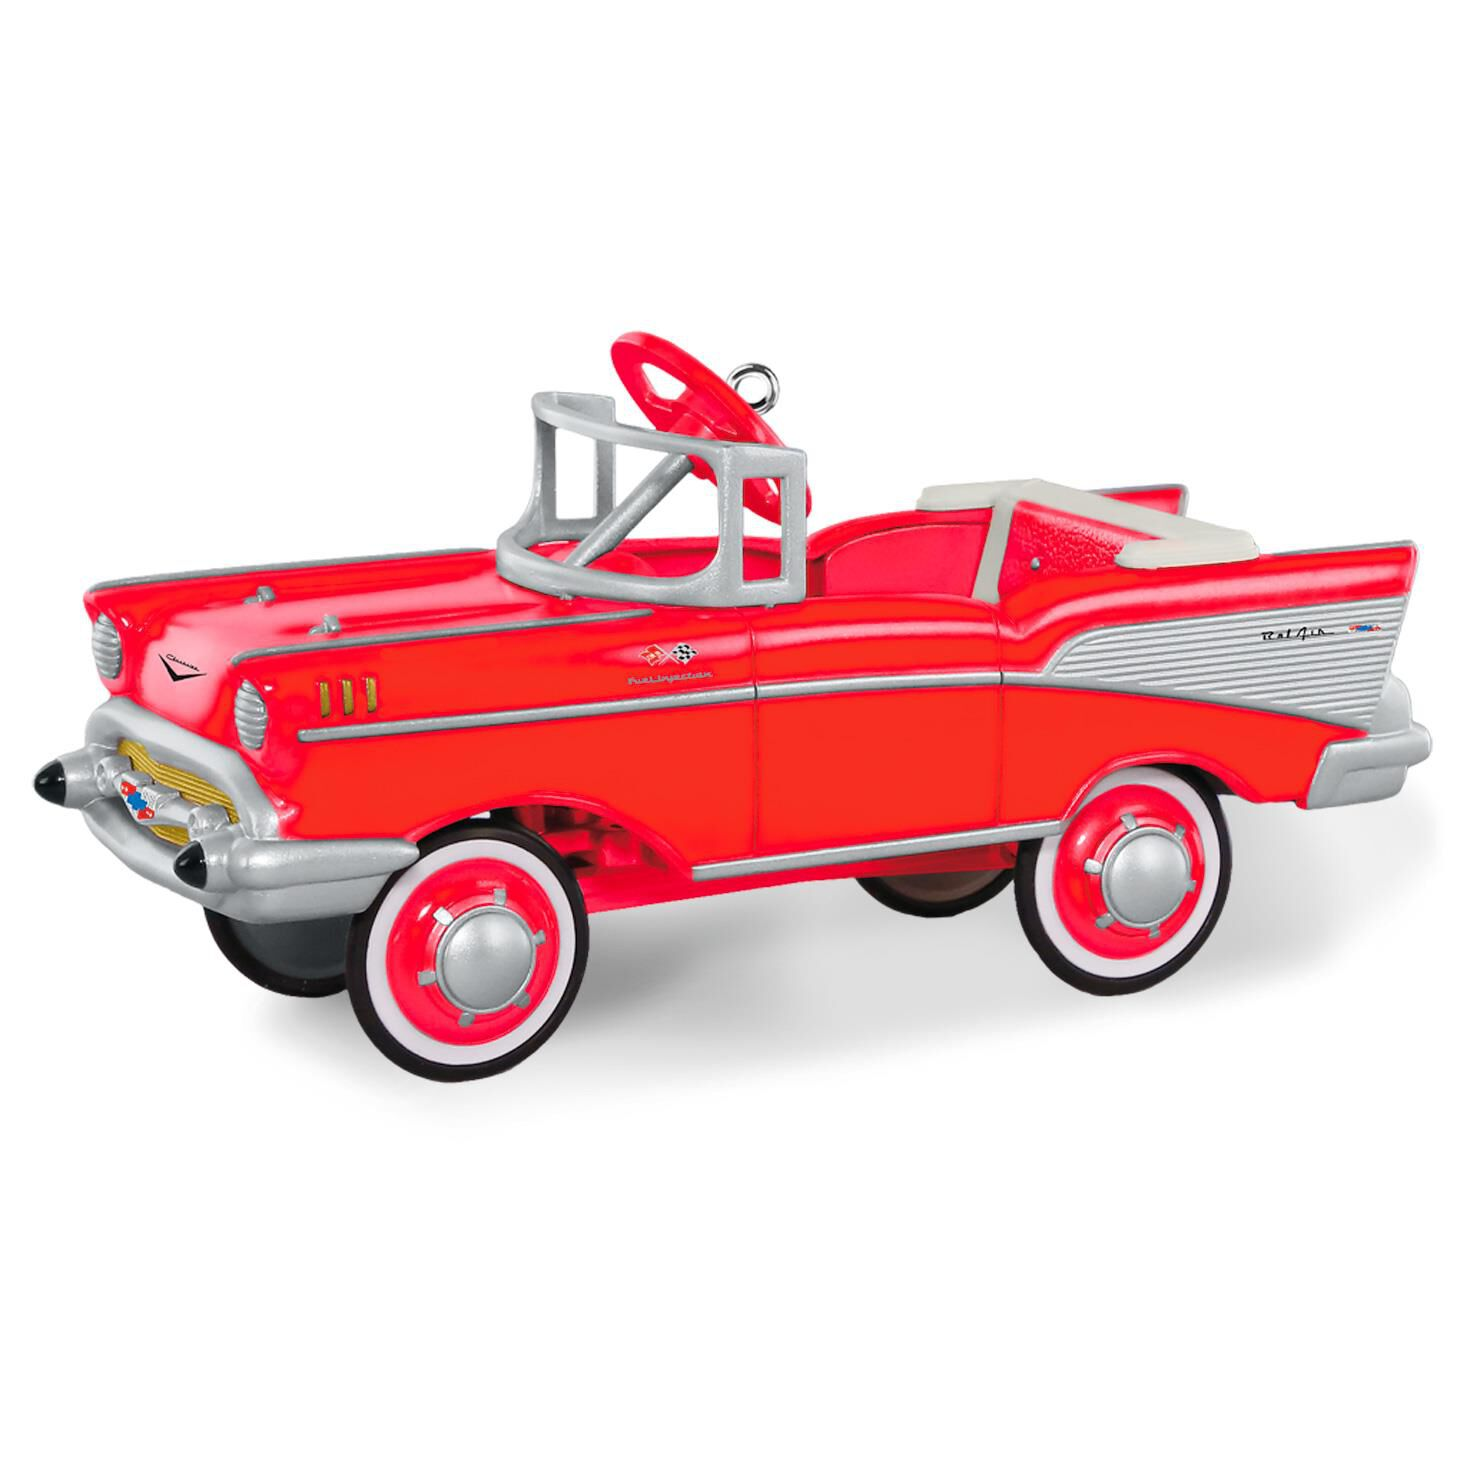 1957 Chevrolet® Bel Air Car Ornament - Keepsake Ornaments - Hallmark